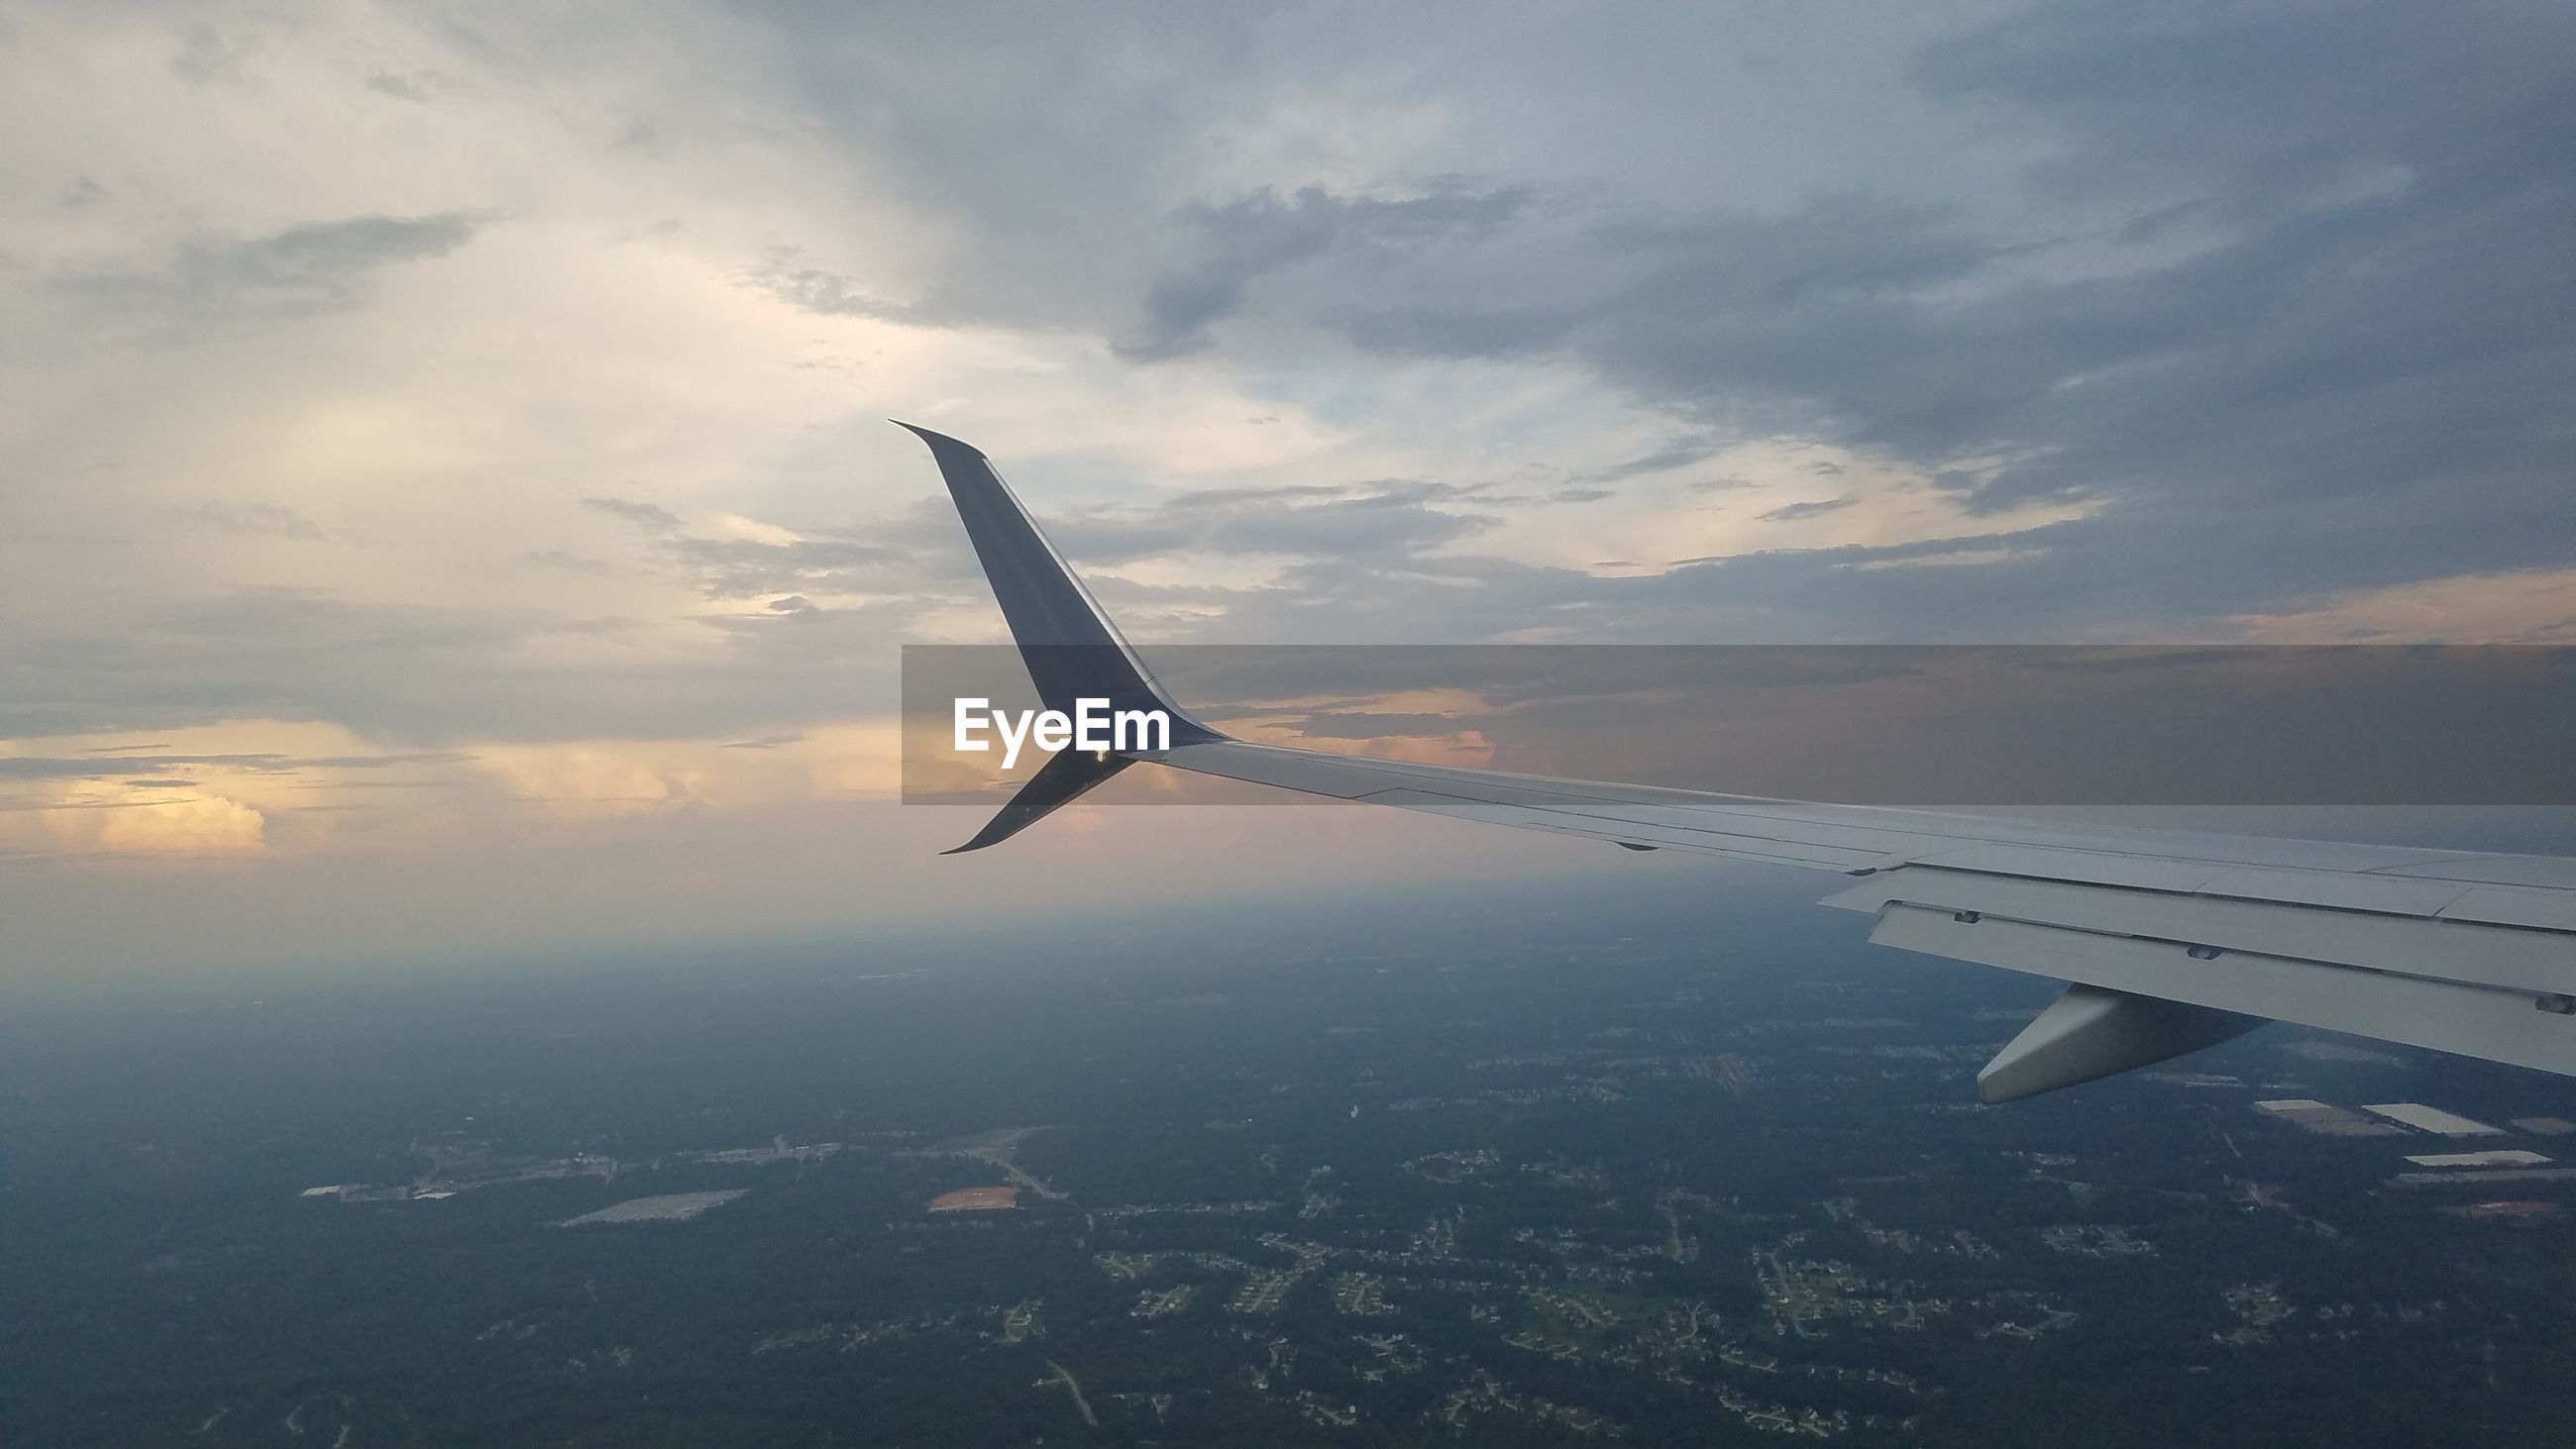 airplane, flying, air vehicle, sky, sunset, journey, transportation, airplane wing, cloud - sky, aerial view, aircraft wing, mid-air, nature, mode of transport, travel, no people, beauty in nature, outdoors, scenics, day